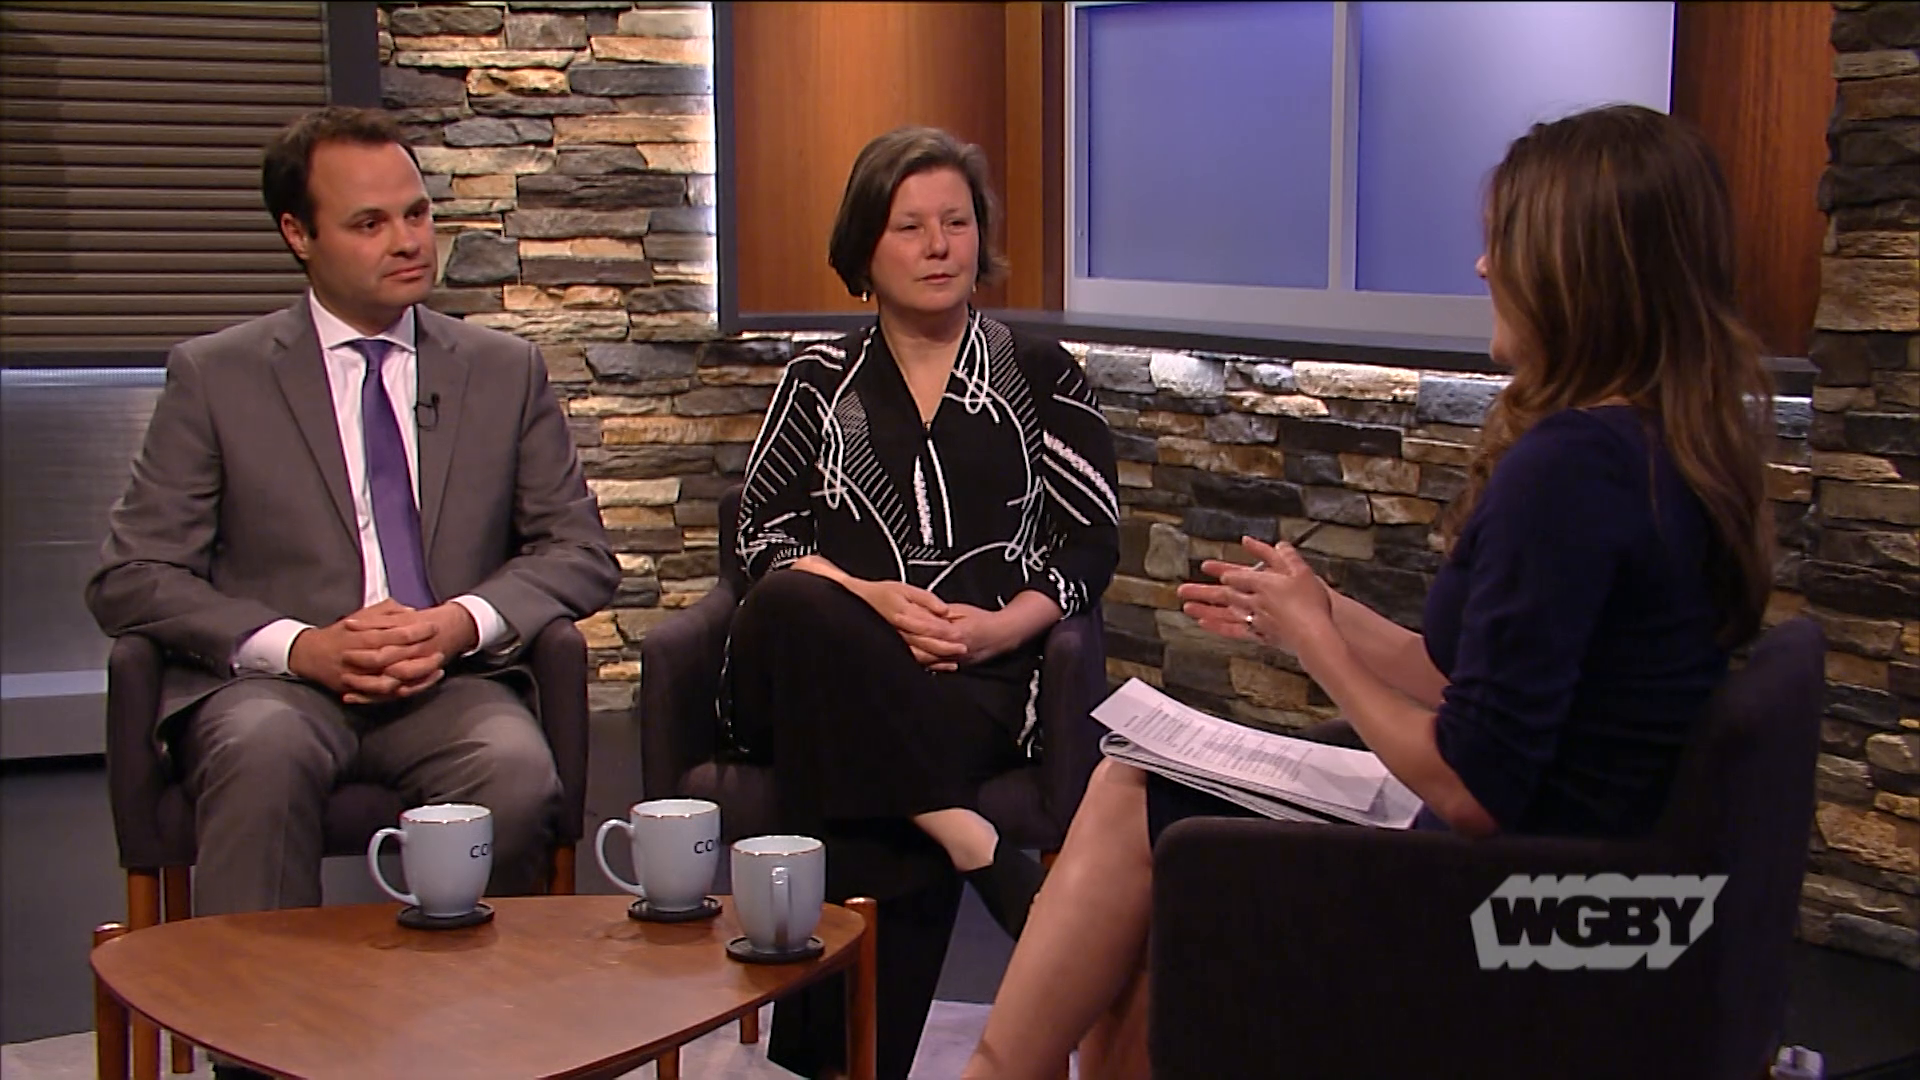 Senator Eric lesser and Senator Jo Comerford explain why they are advocating for additional funds to market the Knowledge Corridor Pilot Program.